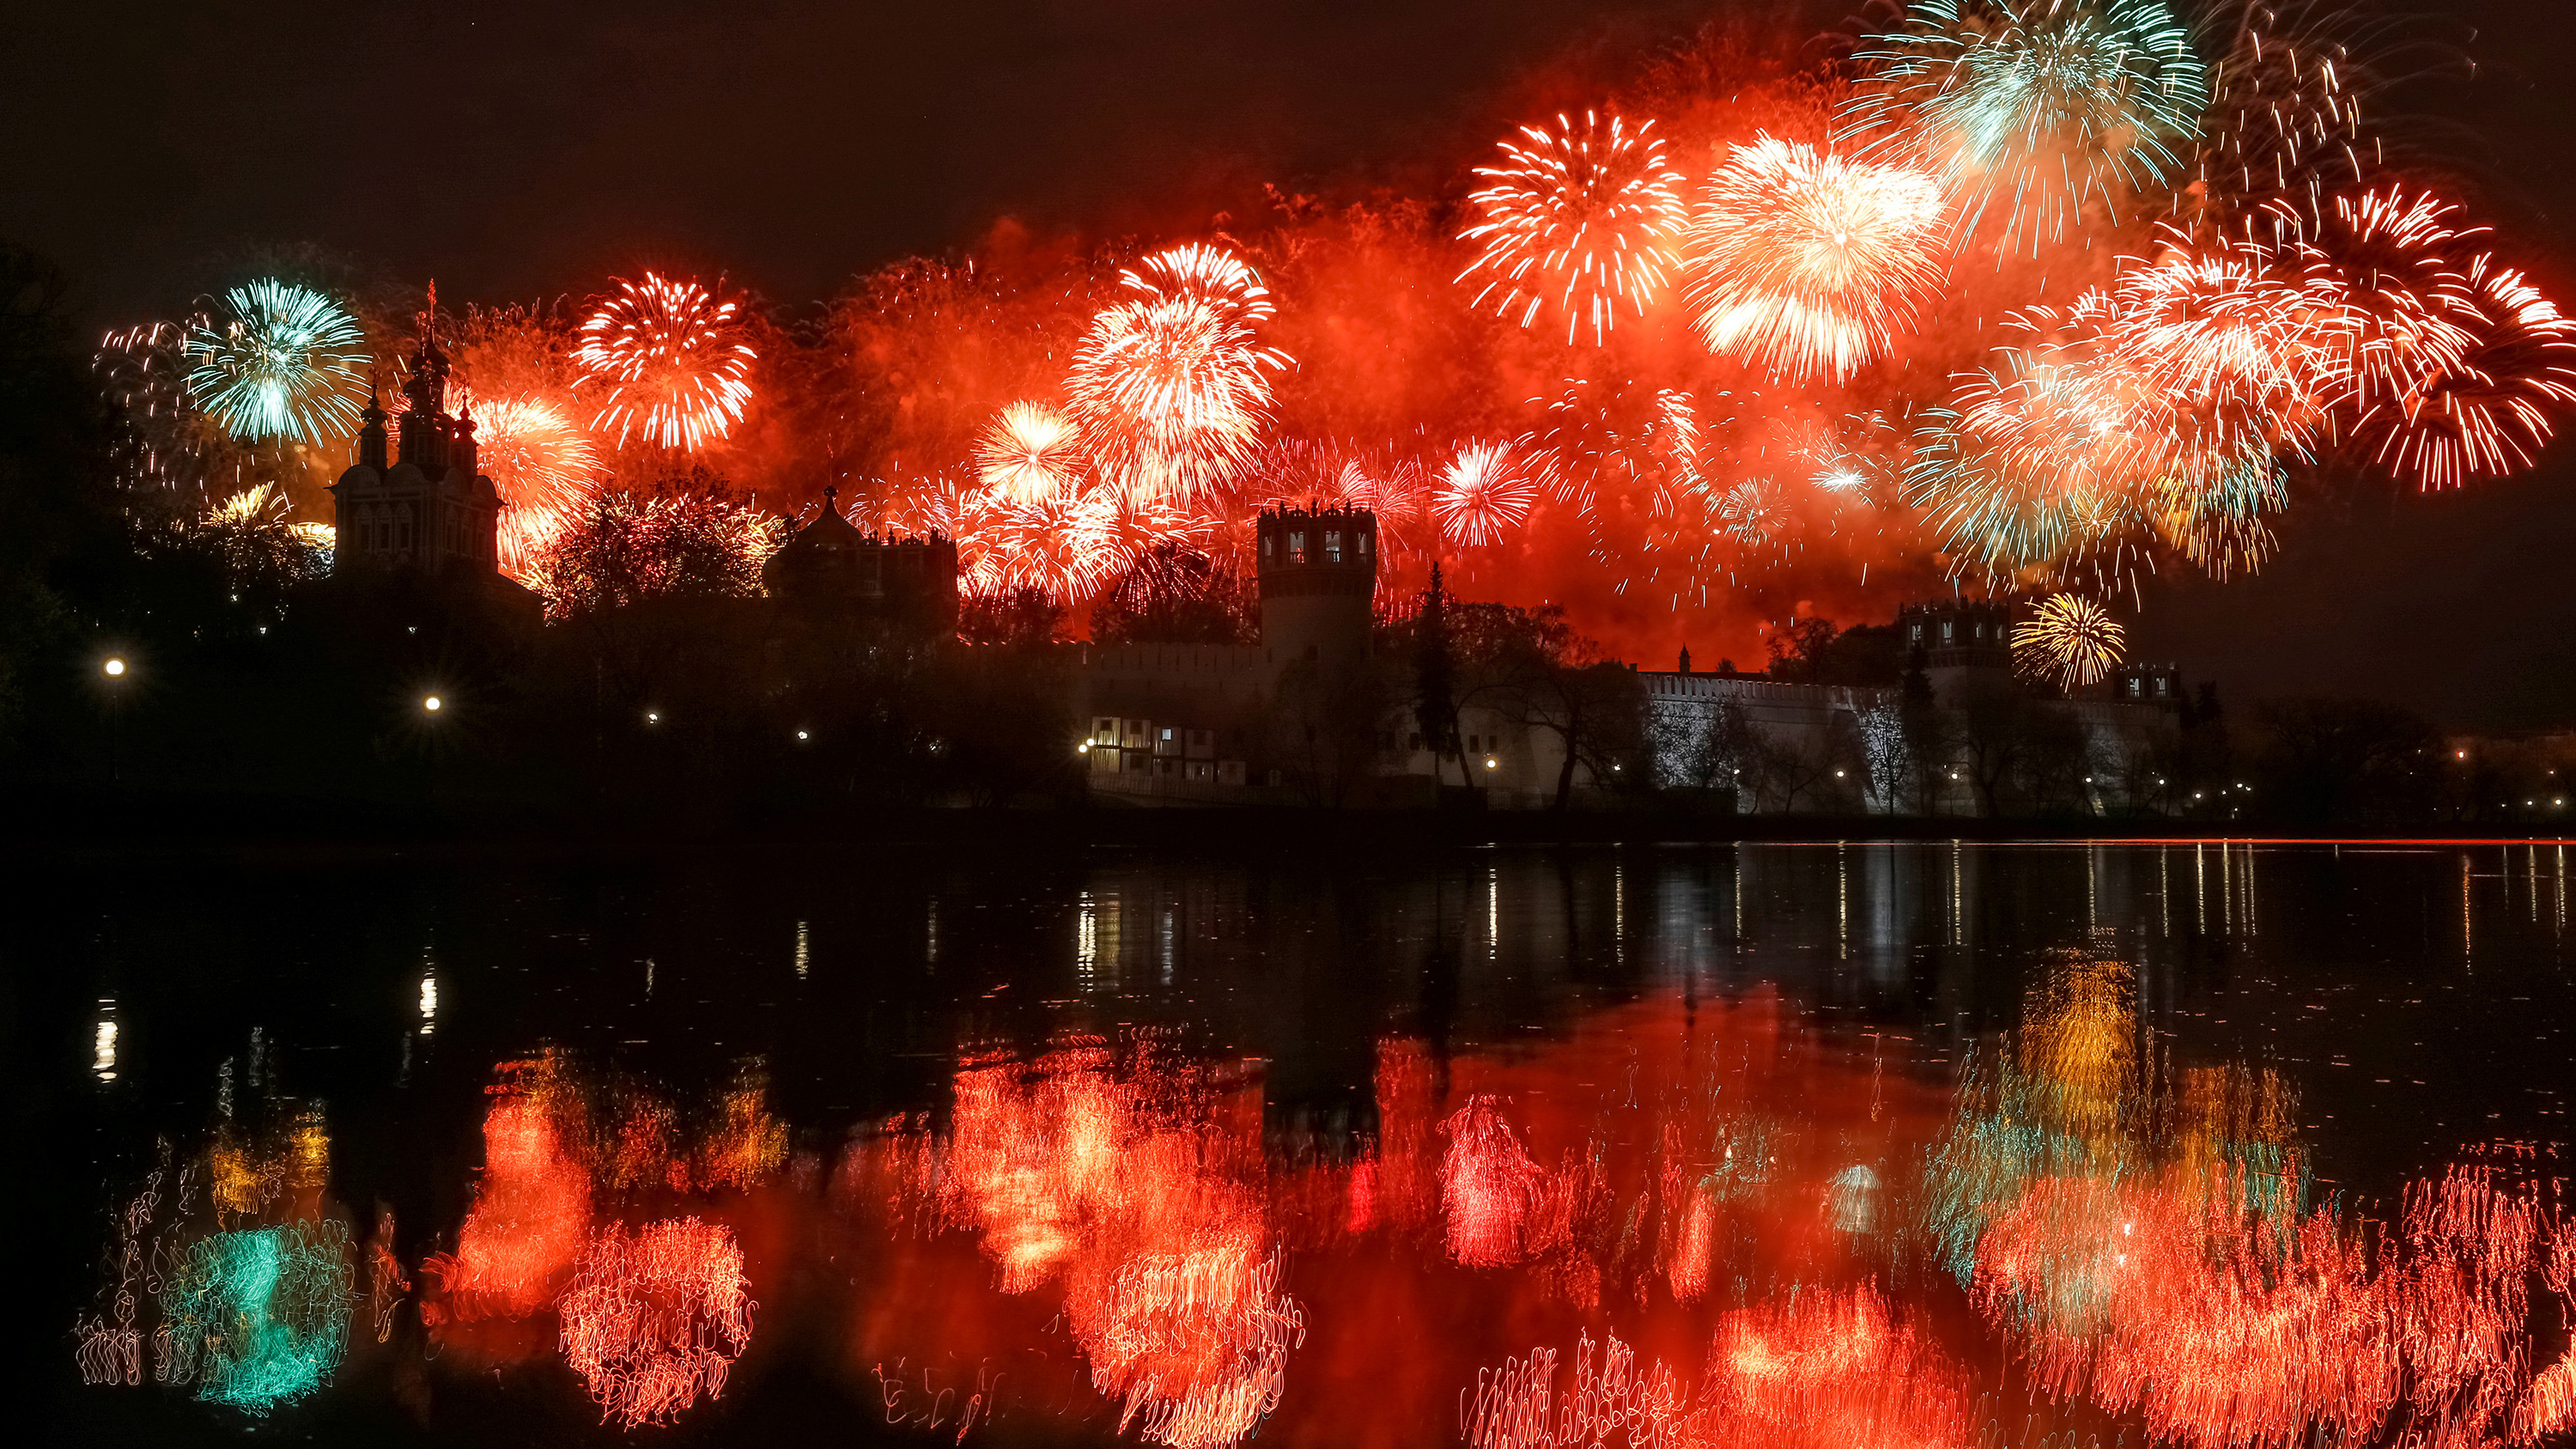 This is a striking photo showing a huge number of fireworks exploding behind a magnificent monastery and reflected on the river facing the camera.